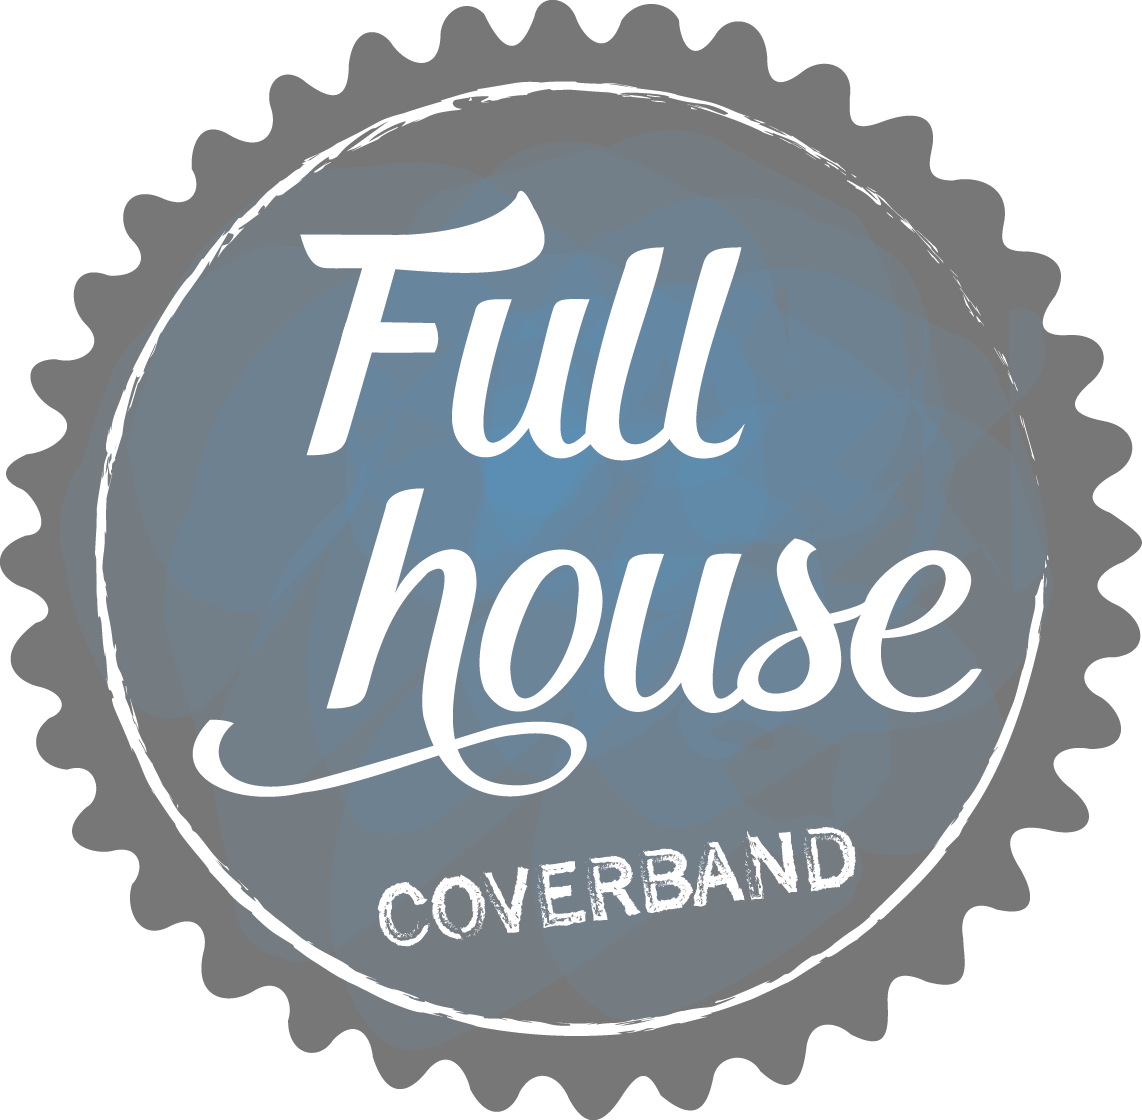 Full House Coverband